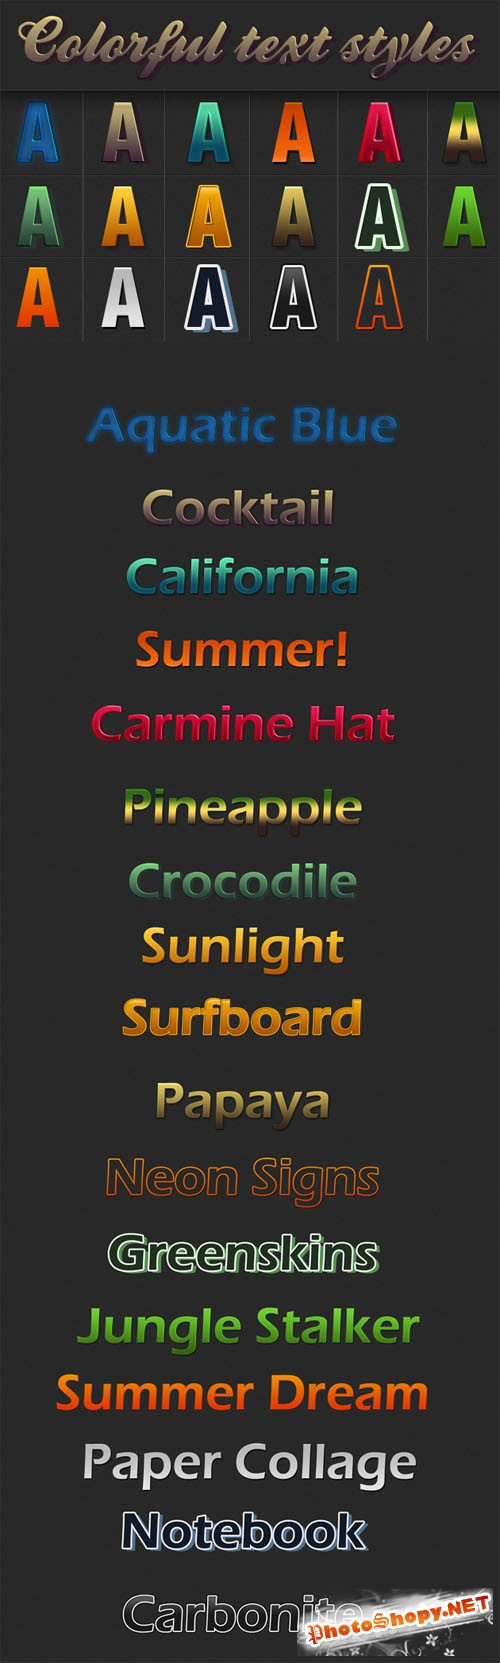 Designtnt - Colorful Text Styles for Photoshop